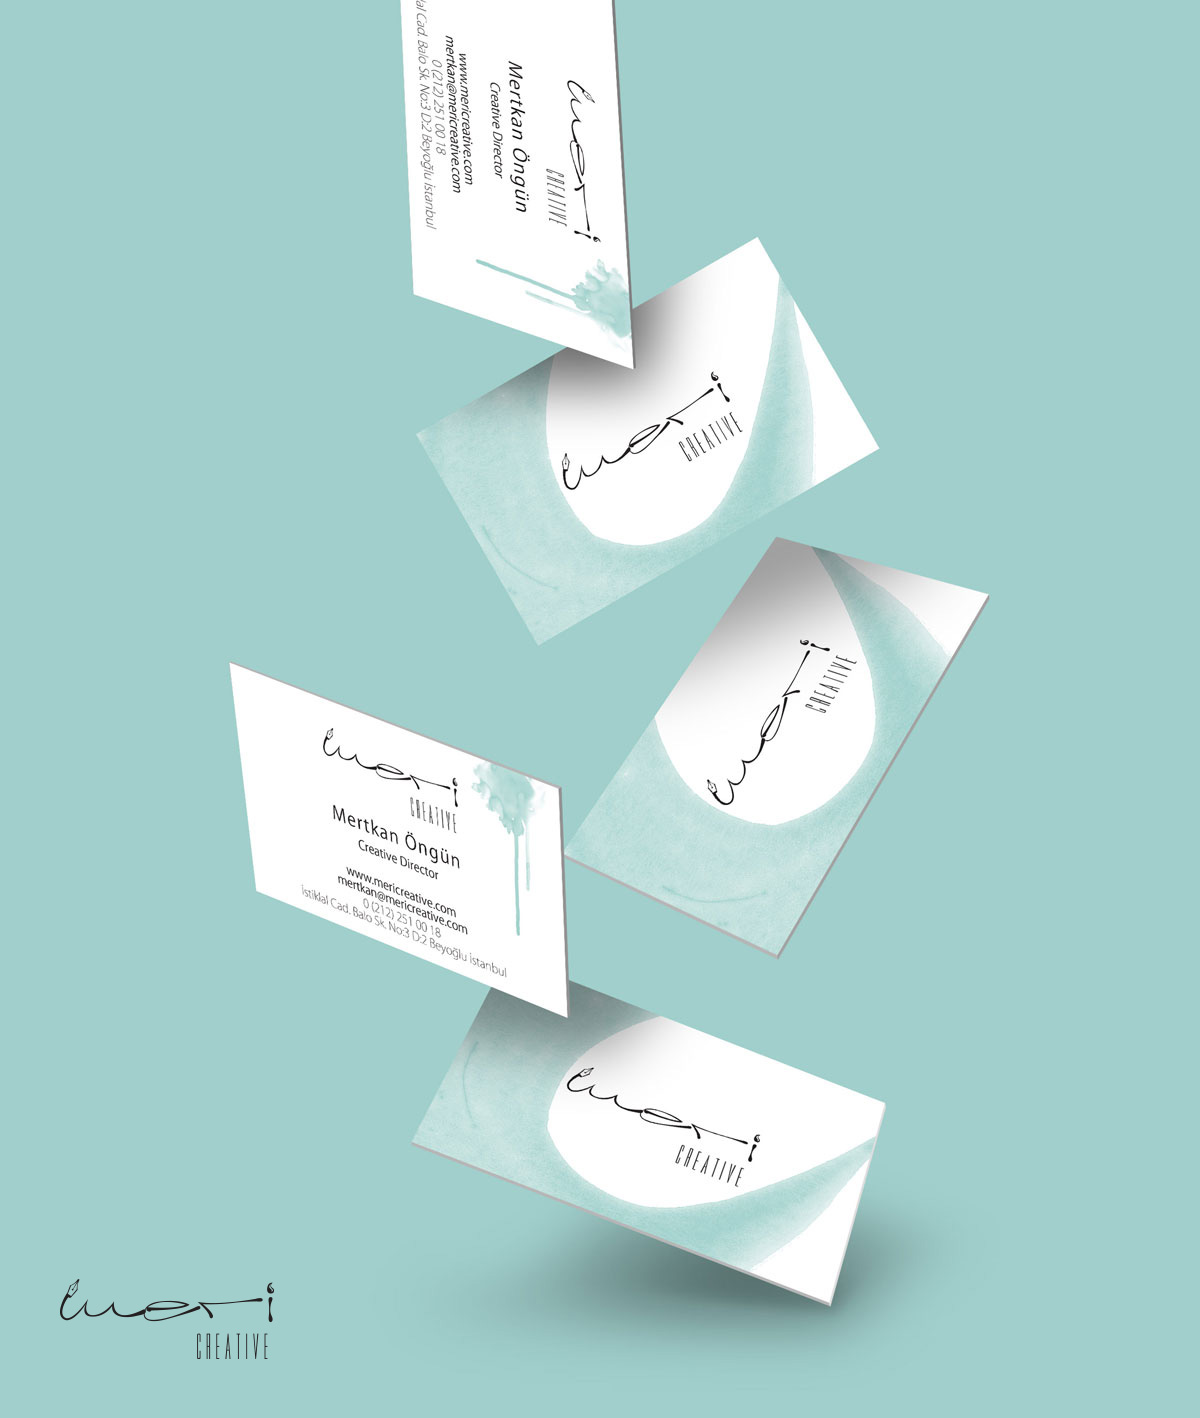 Meri Creative Agency Branding Design Business Card Design